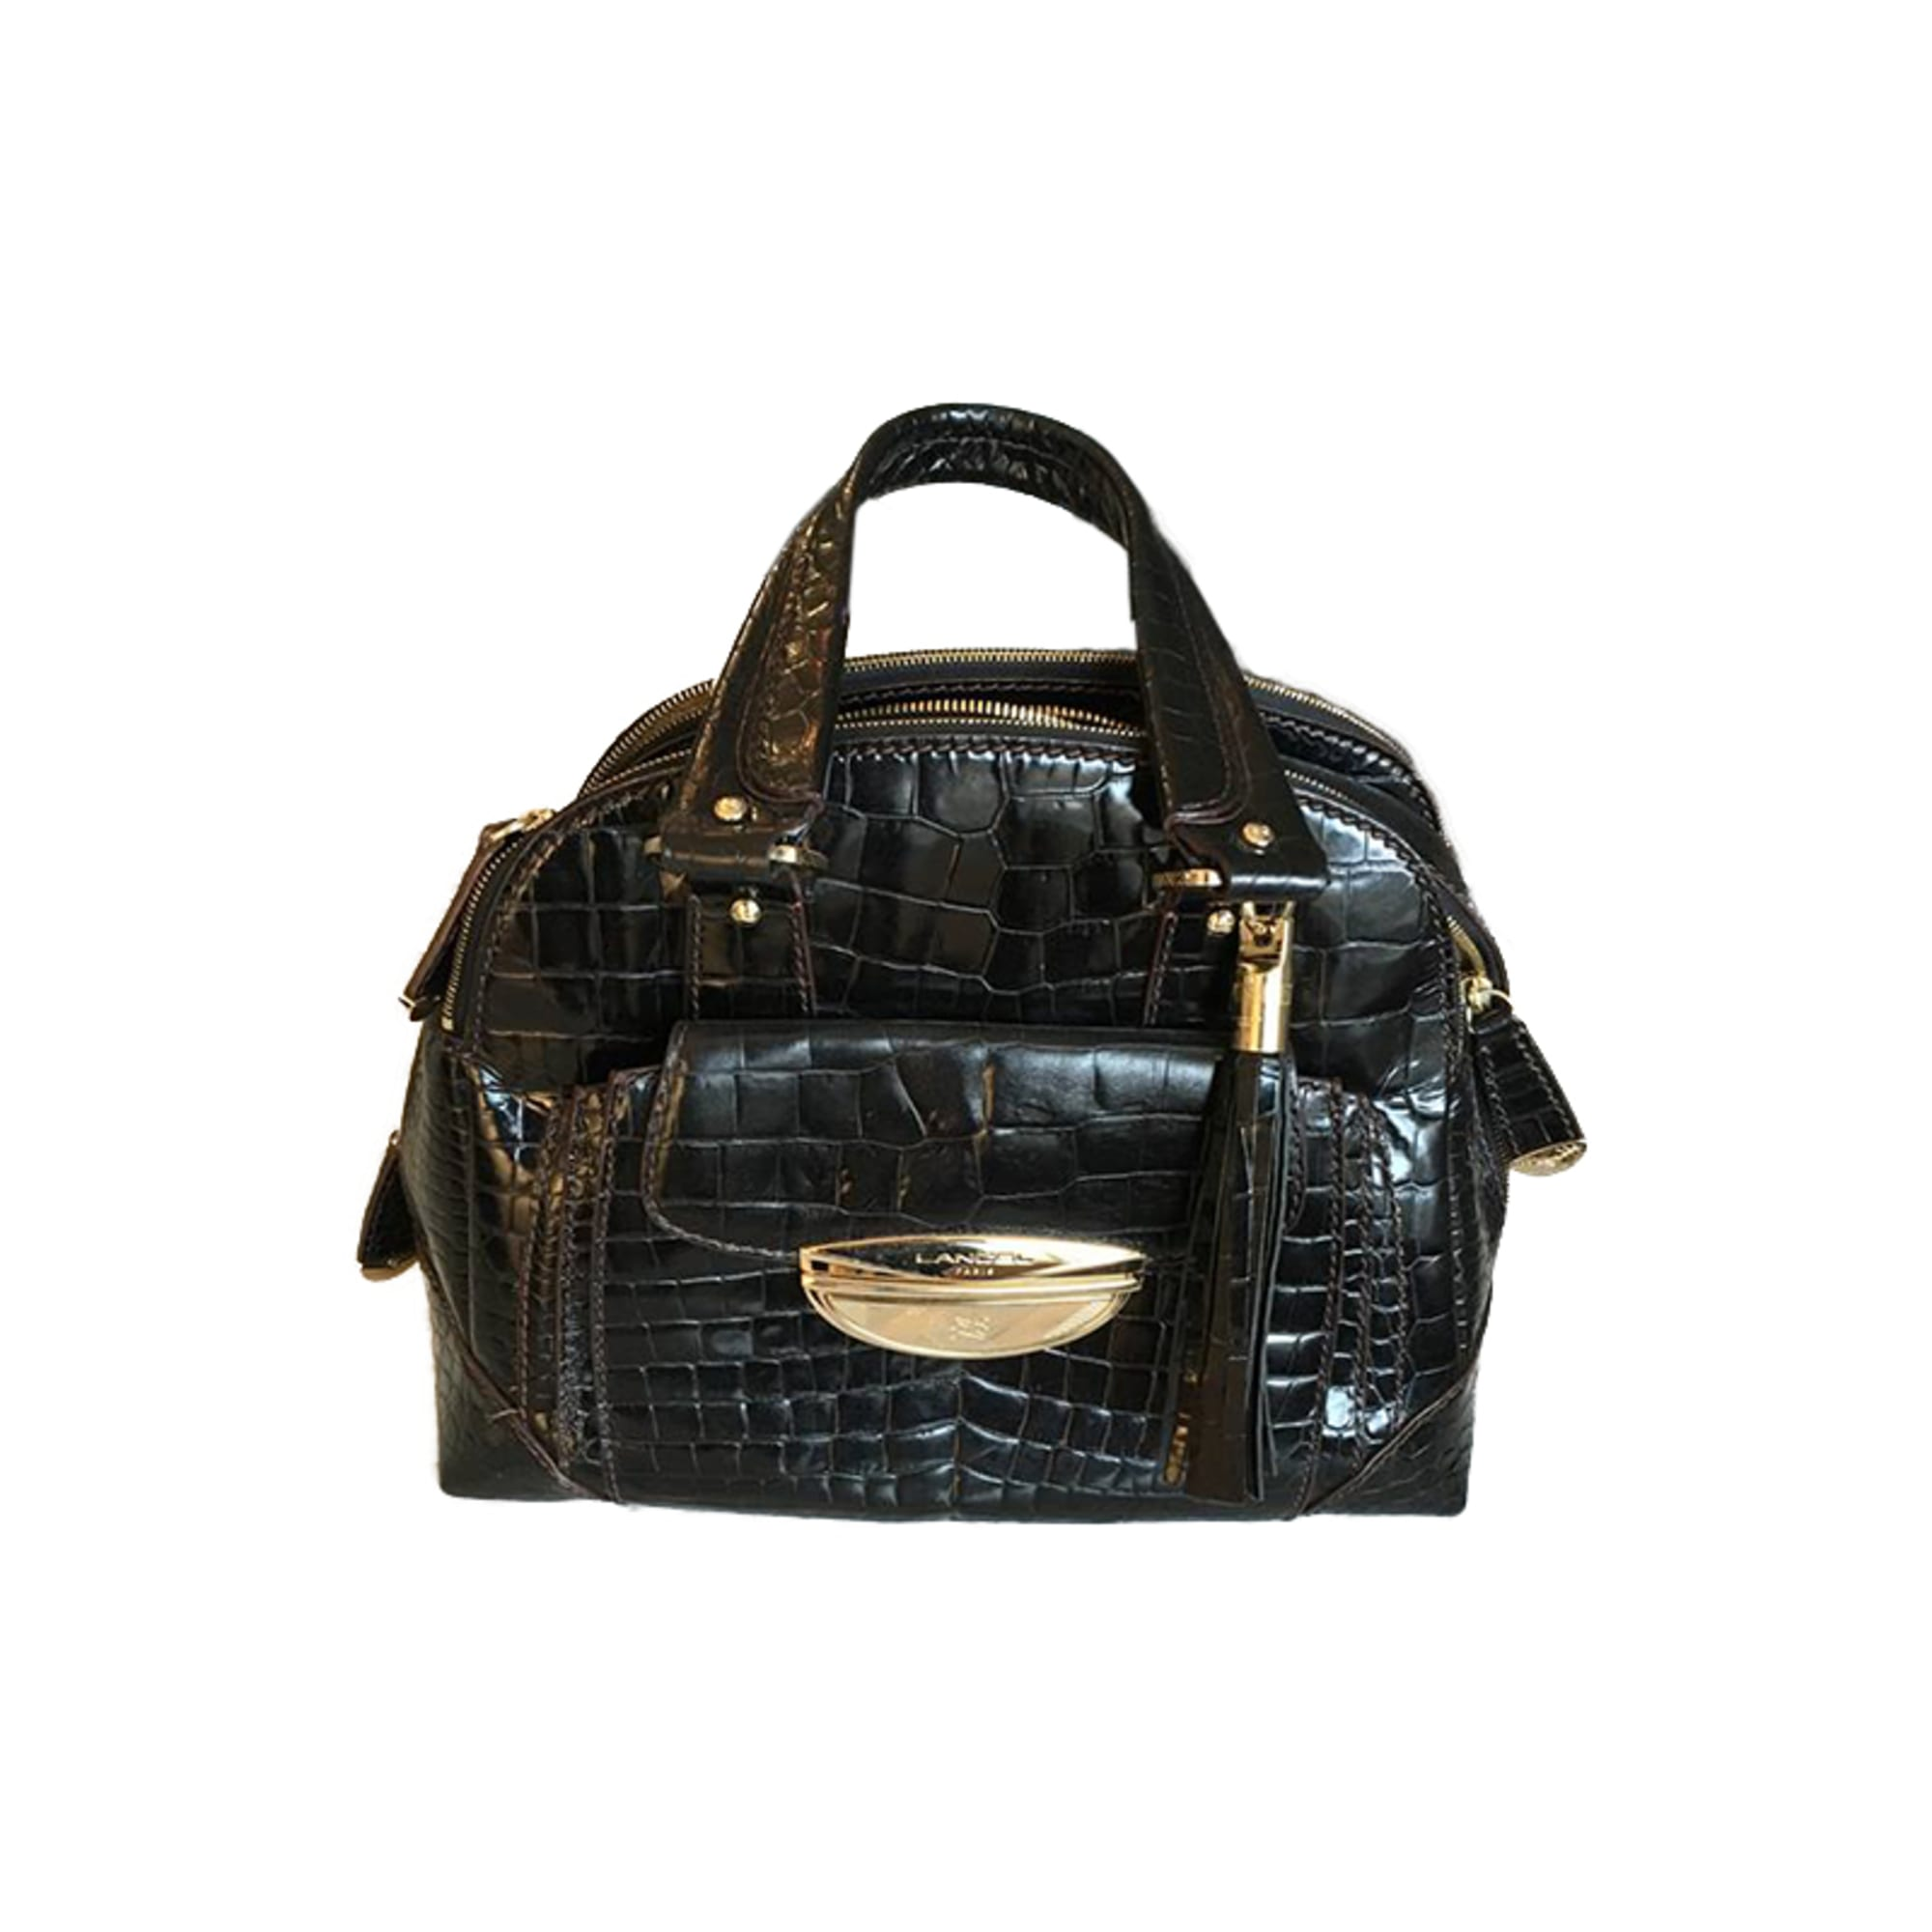 Leather Handbag LANCEL Black